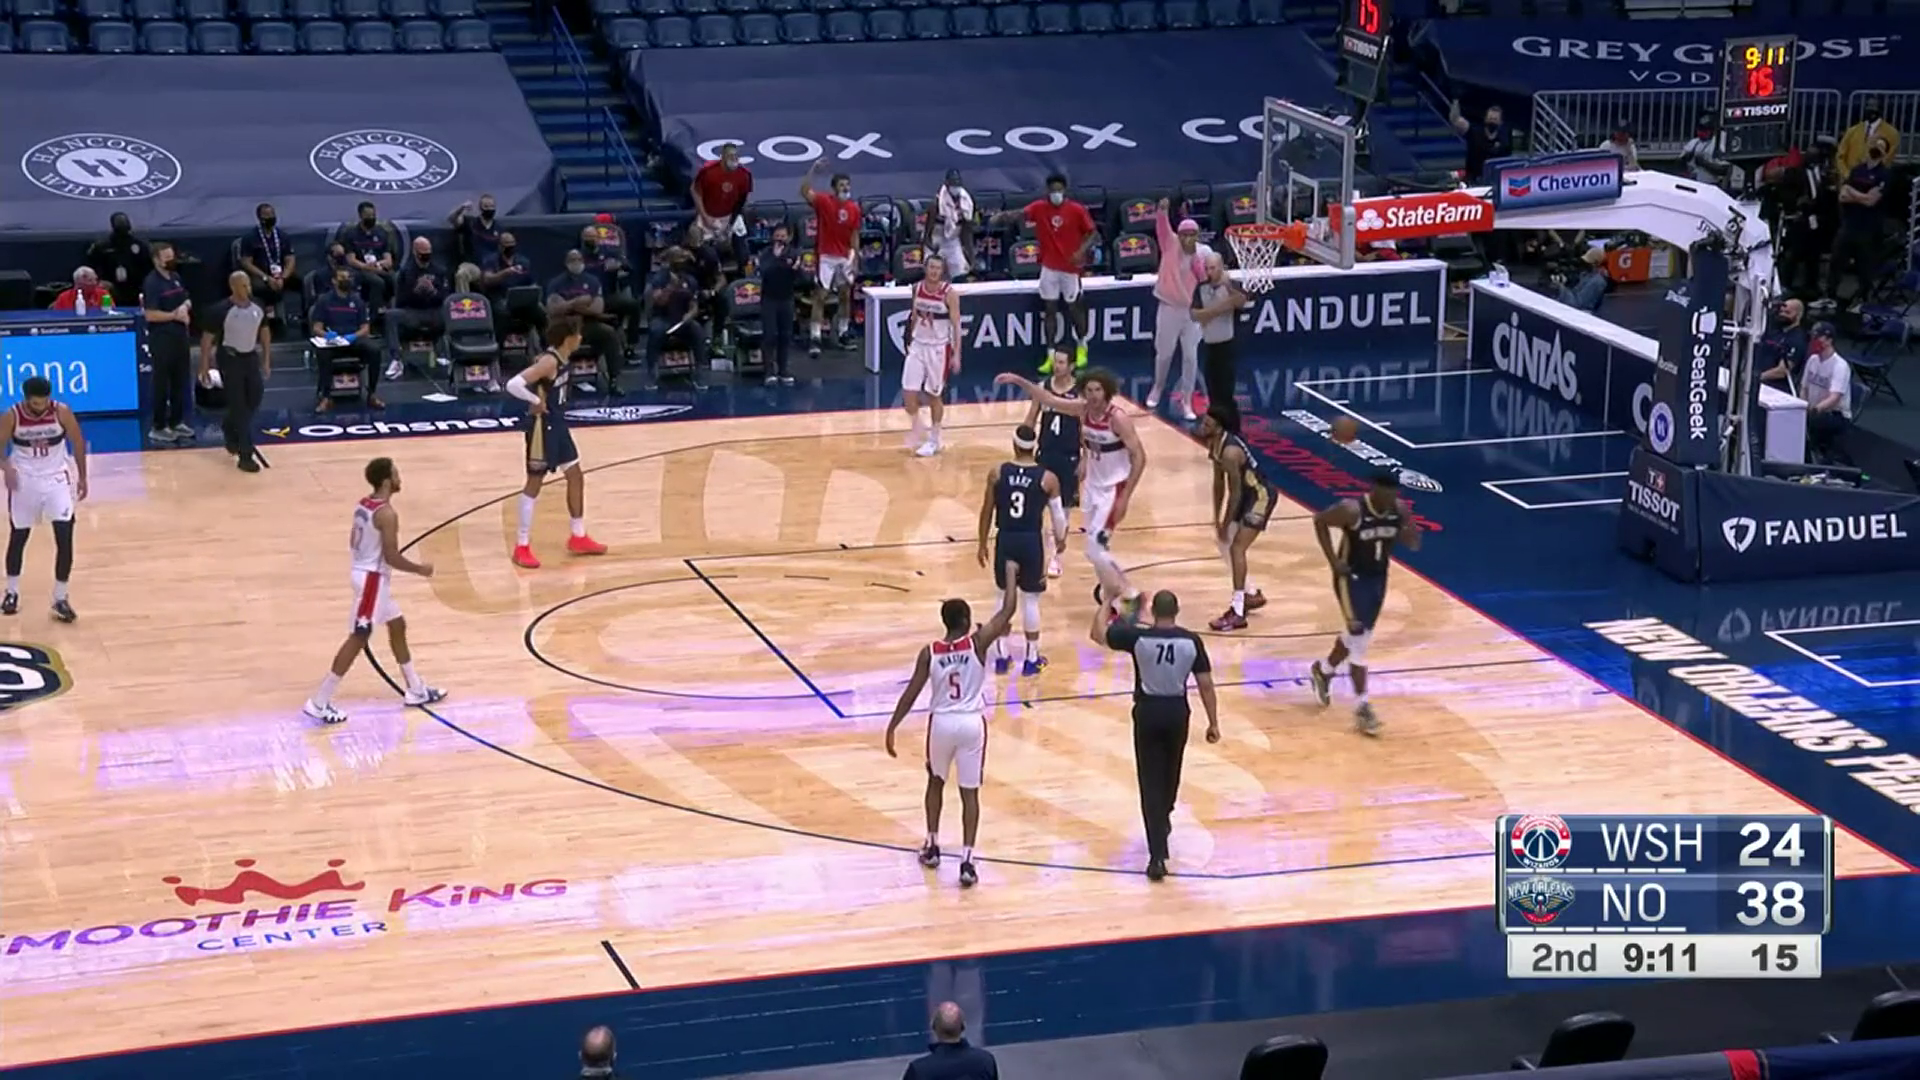 Highlights: Wizards at Pelicans - 1/27/21